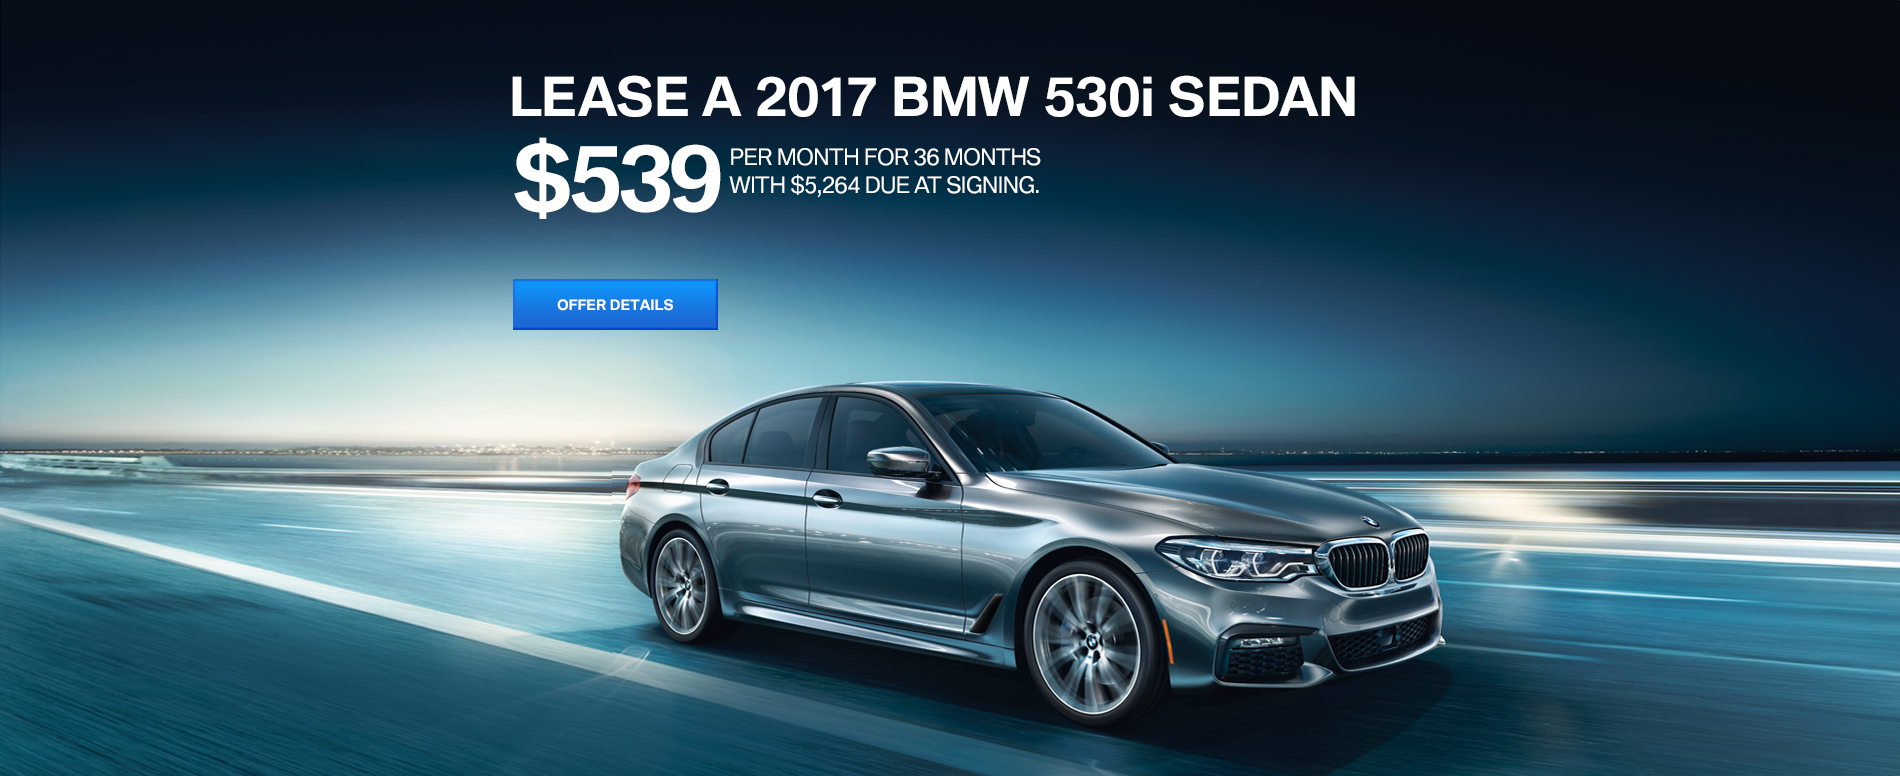 LEASE A 2017 530i SEDAN FOR $539/MO FOR 36 MONTHS